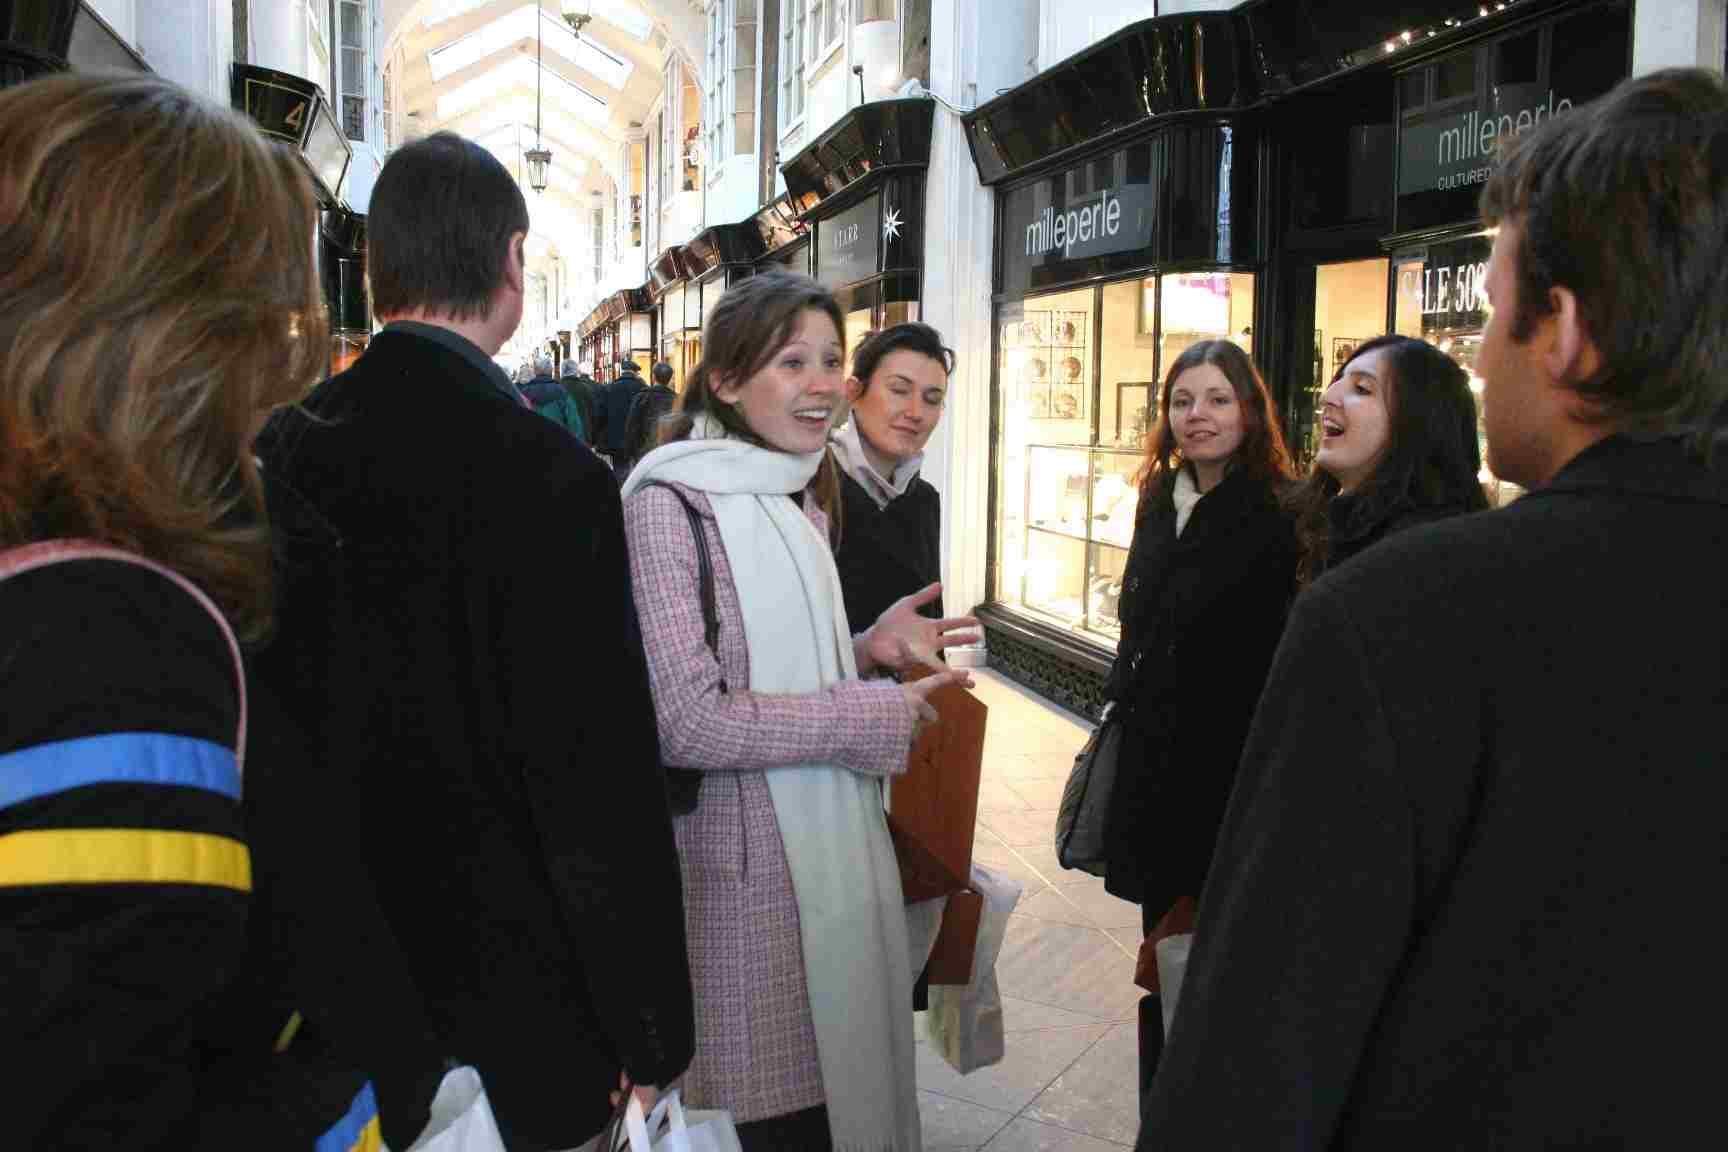 Mayfair Chocolate Ecstasy Tour London Walking Tour Burlington Arcade